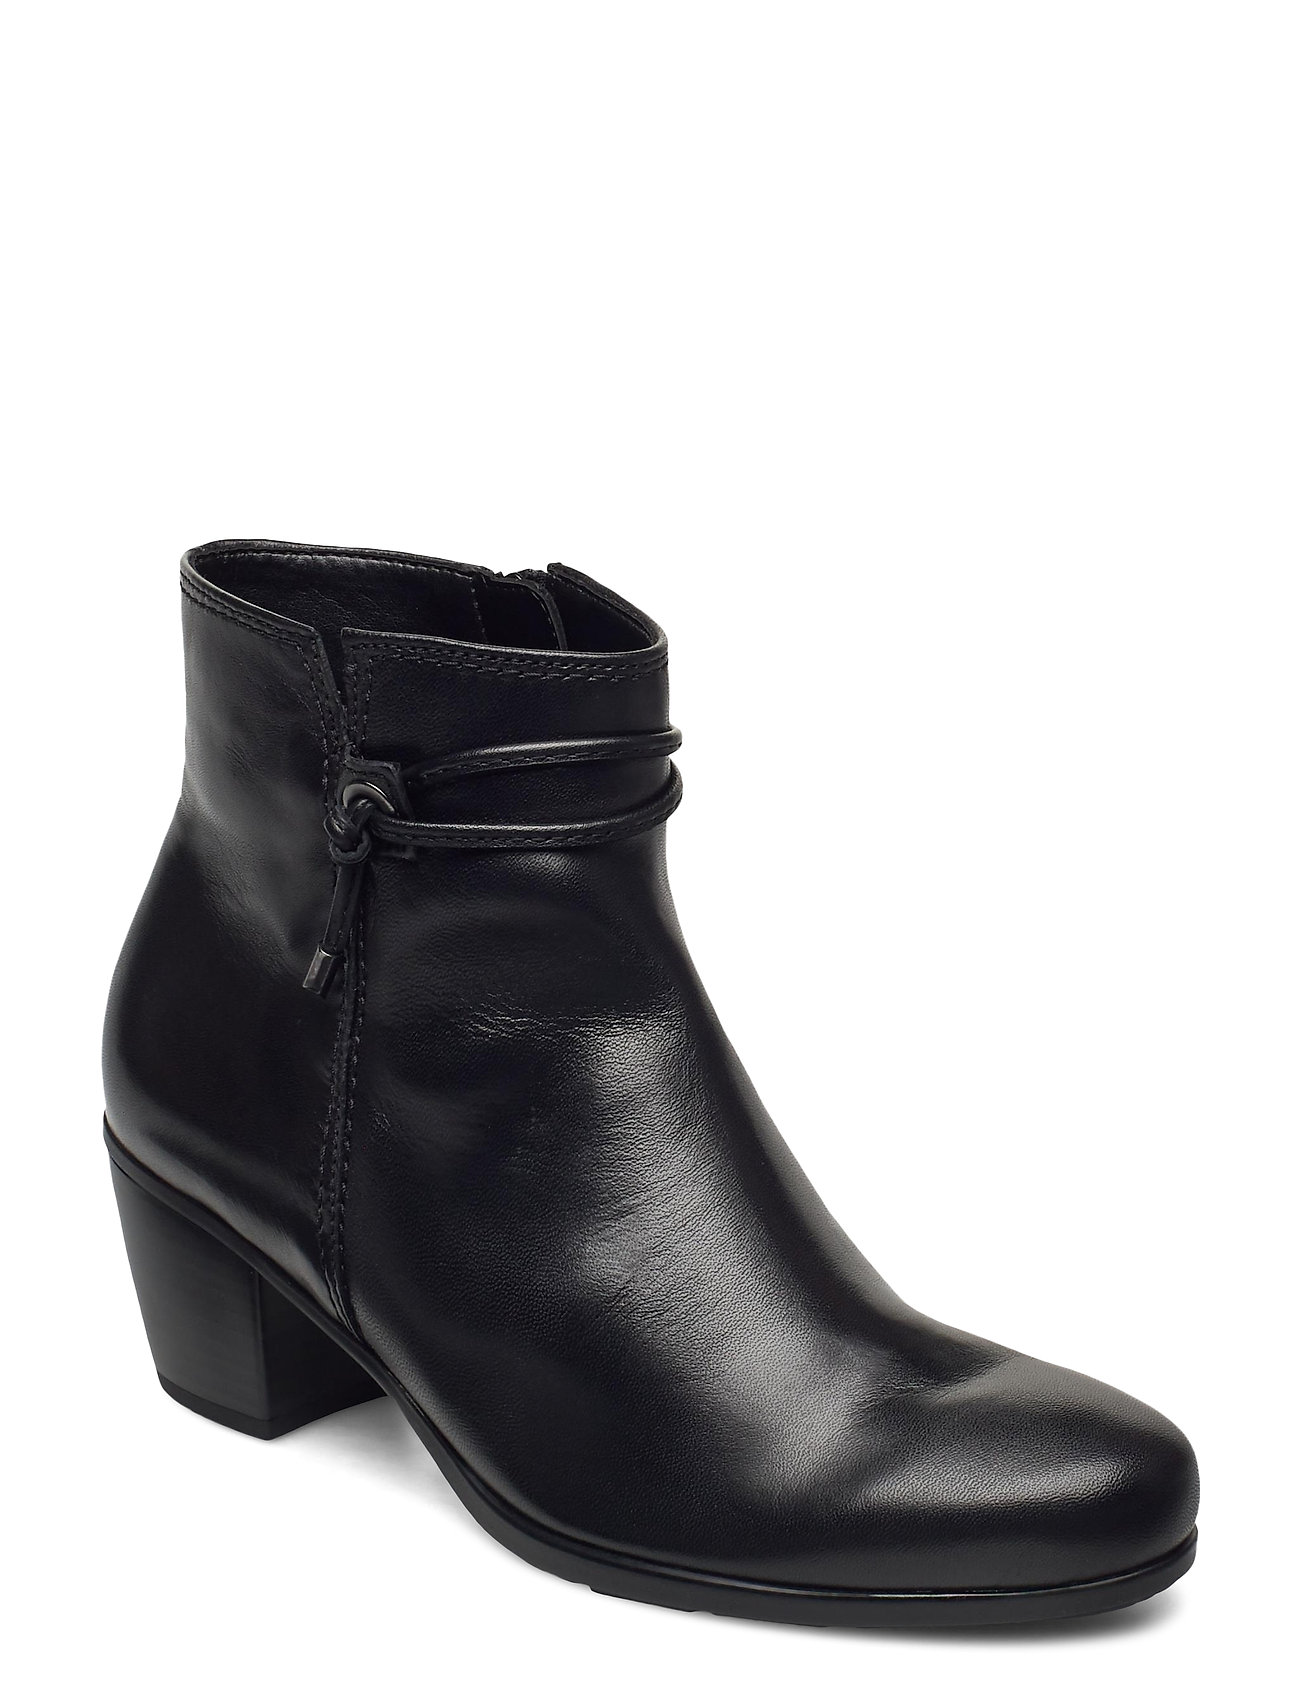 Image of Ankle Boot Shoes Boots Ankle Boots Ankle Boot - Heel Sort Gabor (3462700115)